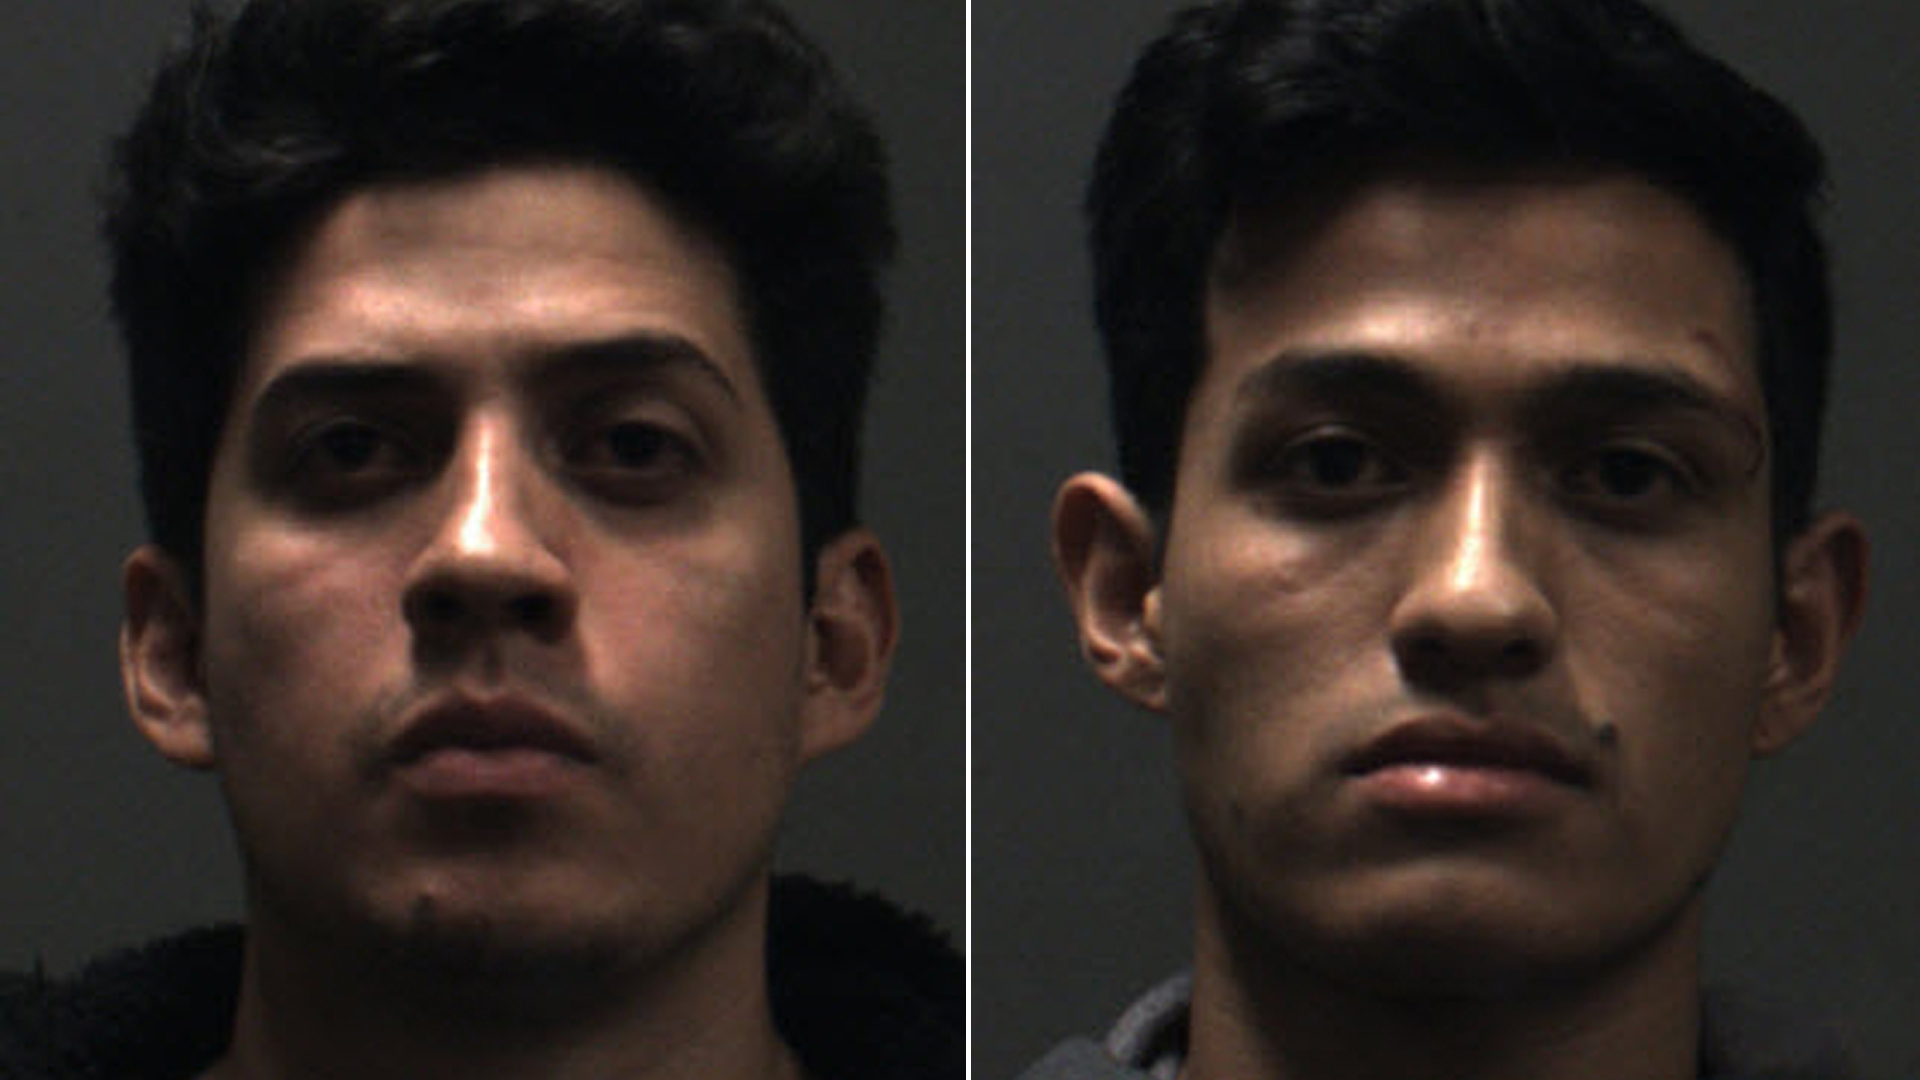 Rony Castaneda Ramirez, left, and Josue Castaneda Ramirez are seen in undated booking photos released on Dec. 16, 2019, by the Chino Police Department.